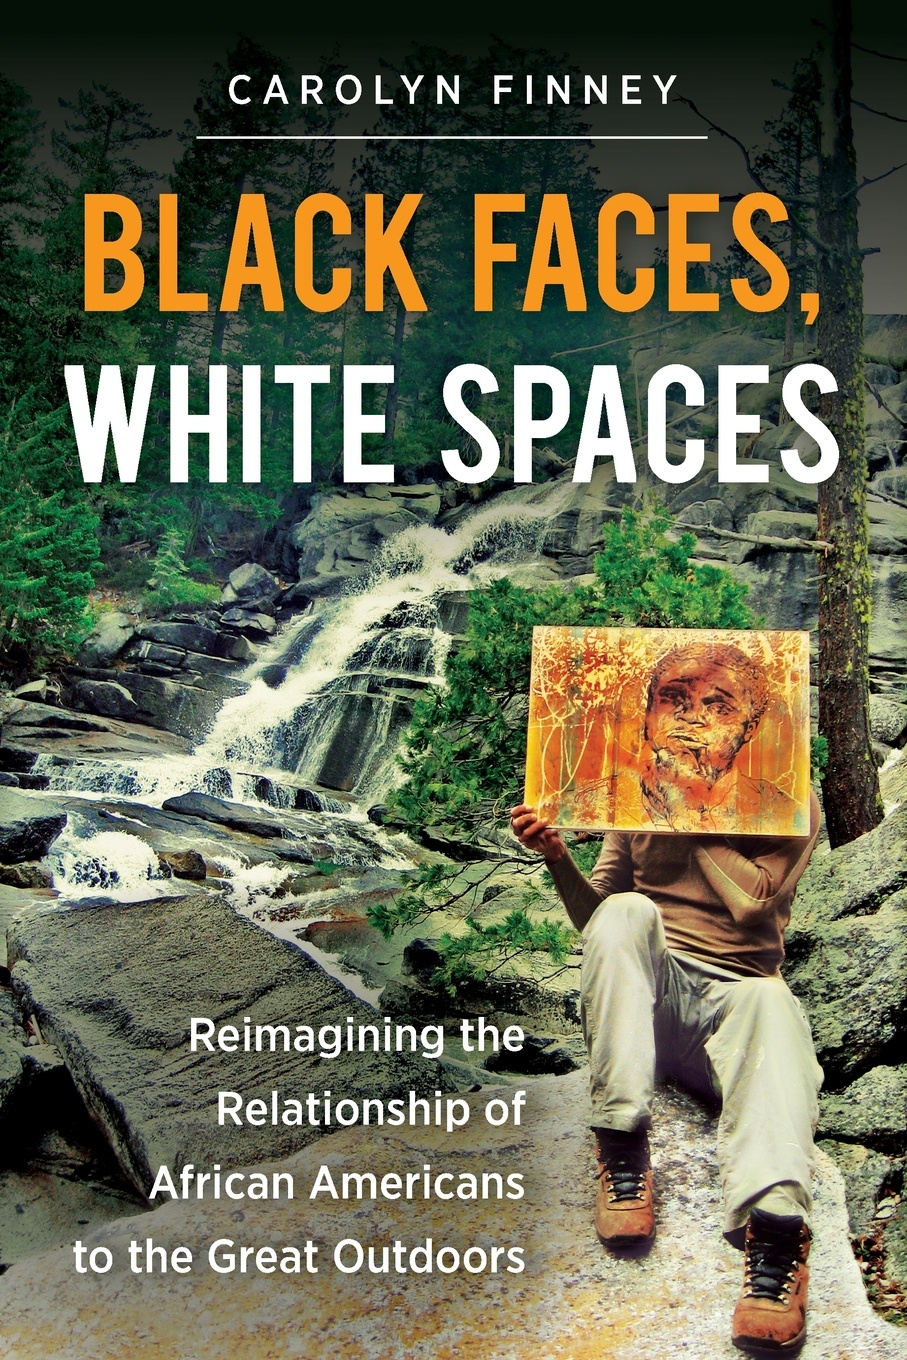 Carolyn Finney Black Faces, White Spaces. Reimagining the Relationship of African Americans to Great Outdoors